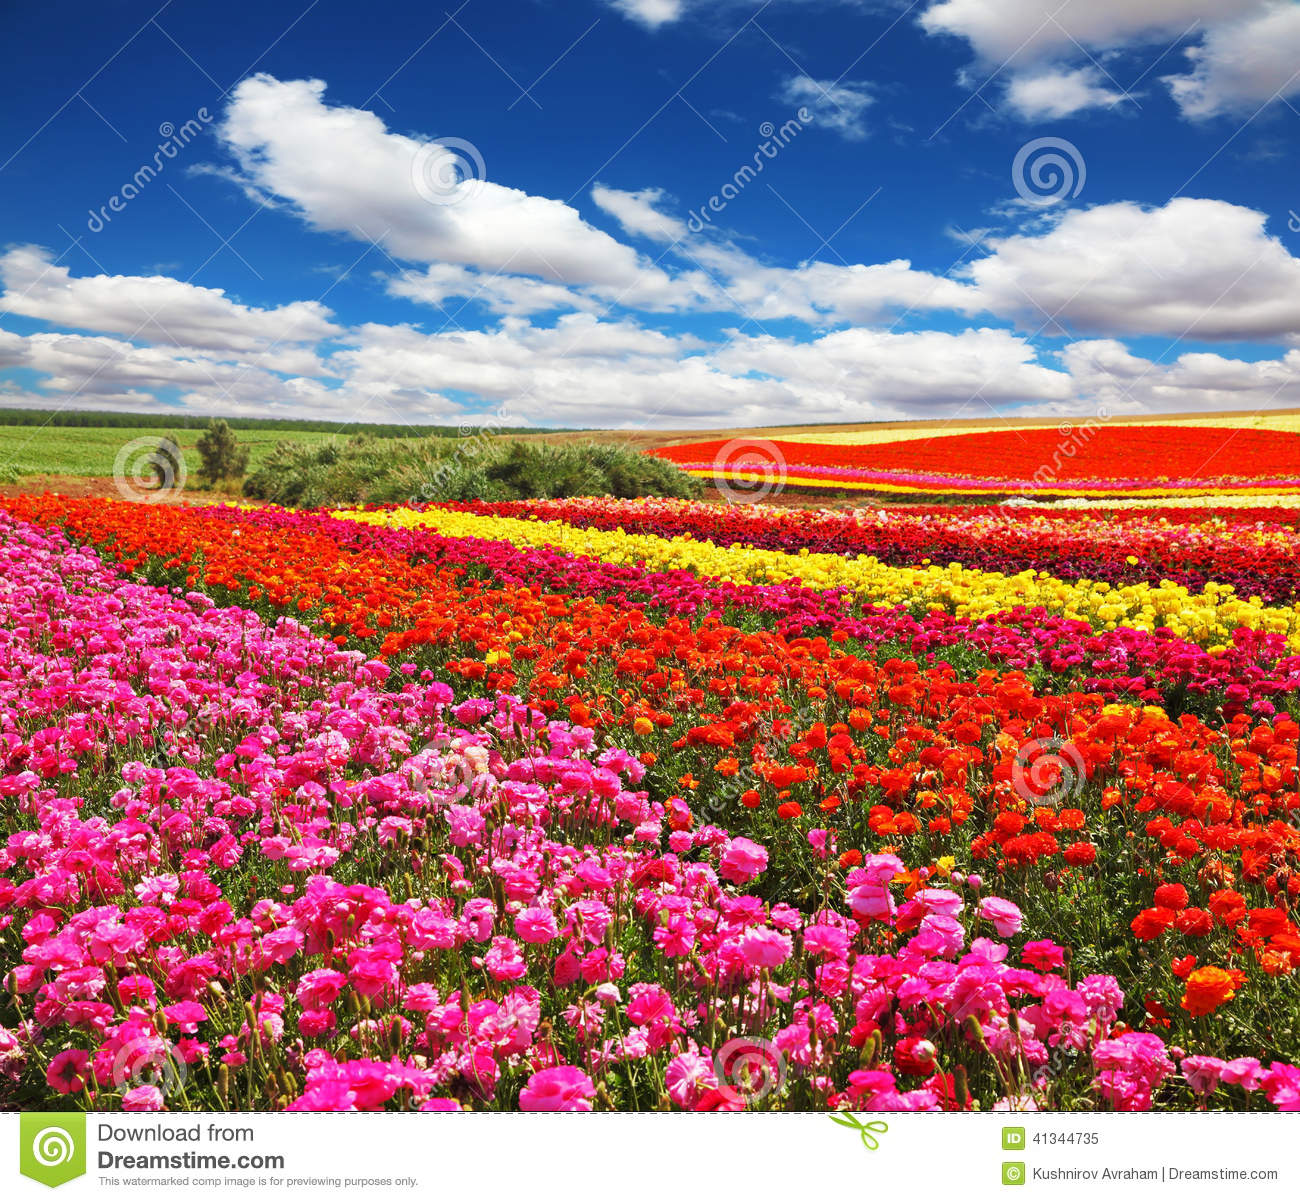 bright red flowers field - photo #48